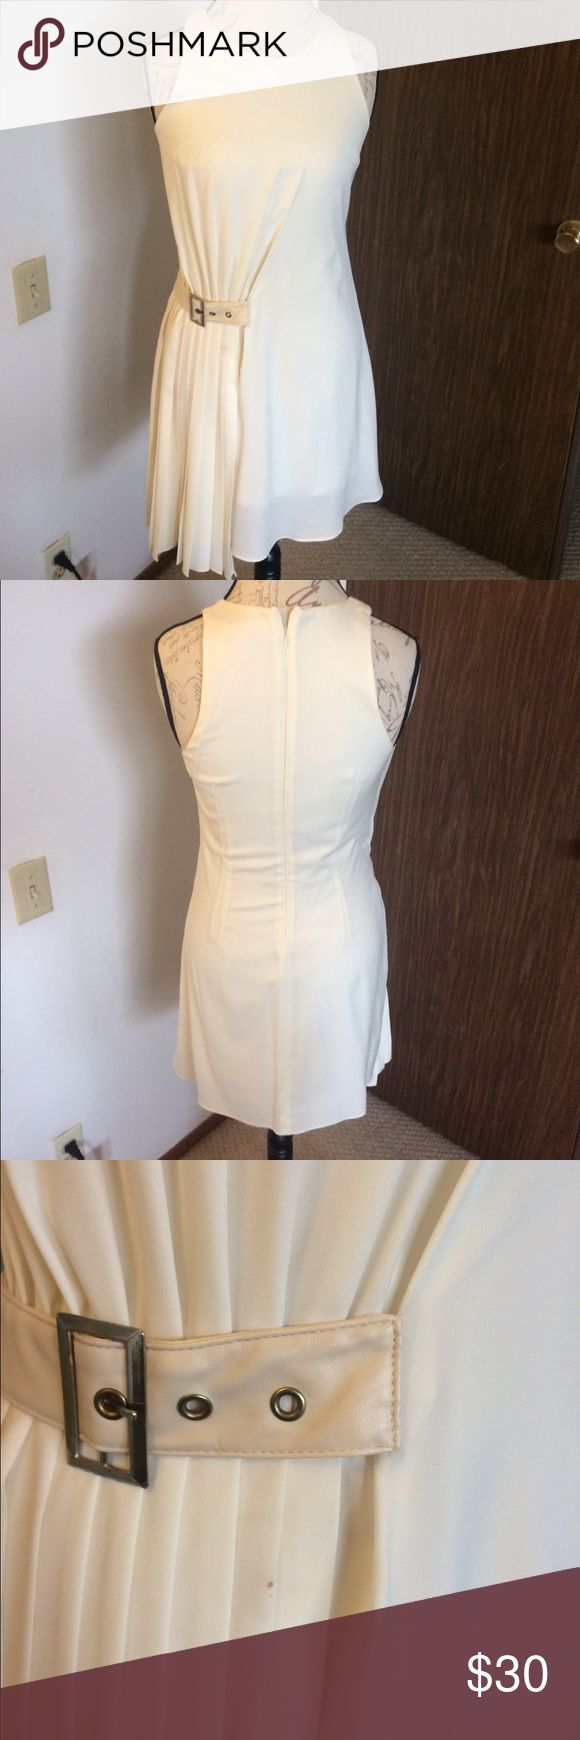 """Rehab brand off white mini SZ M Great condition, only worn once. Super comfy with conservative neckline. Right side pleat detail gives it a 20's style look. Lined lightly, pleat side does a bit longer so style. Small flaw in form of pin sized mark under belt (pictured in 3rd image) I'm guessing it was pen of some sort. Did 3 rounds of wine away and it got lighter each time so prob can get the rest out. Dry cleaned after worn immediately. 25"""" from armpit to bottom, lose fit and I'm a 4/6 at…"""